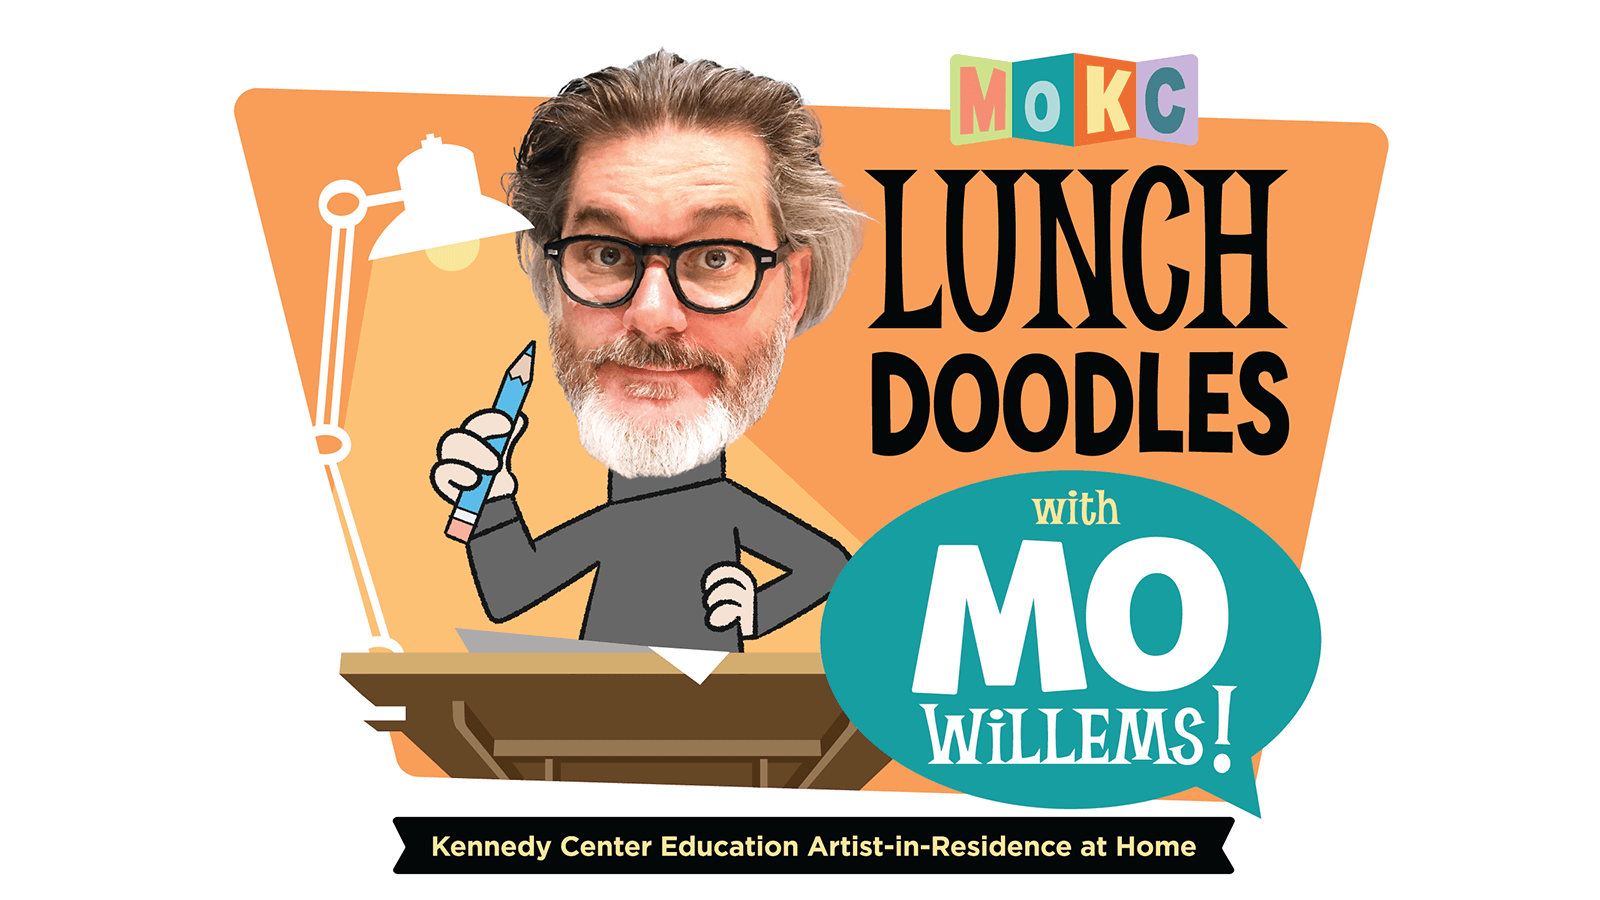 Lunchtime doodles with Mo Willems